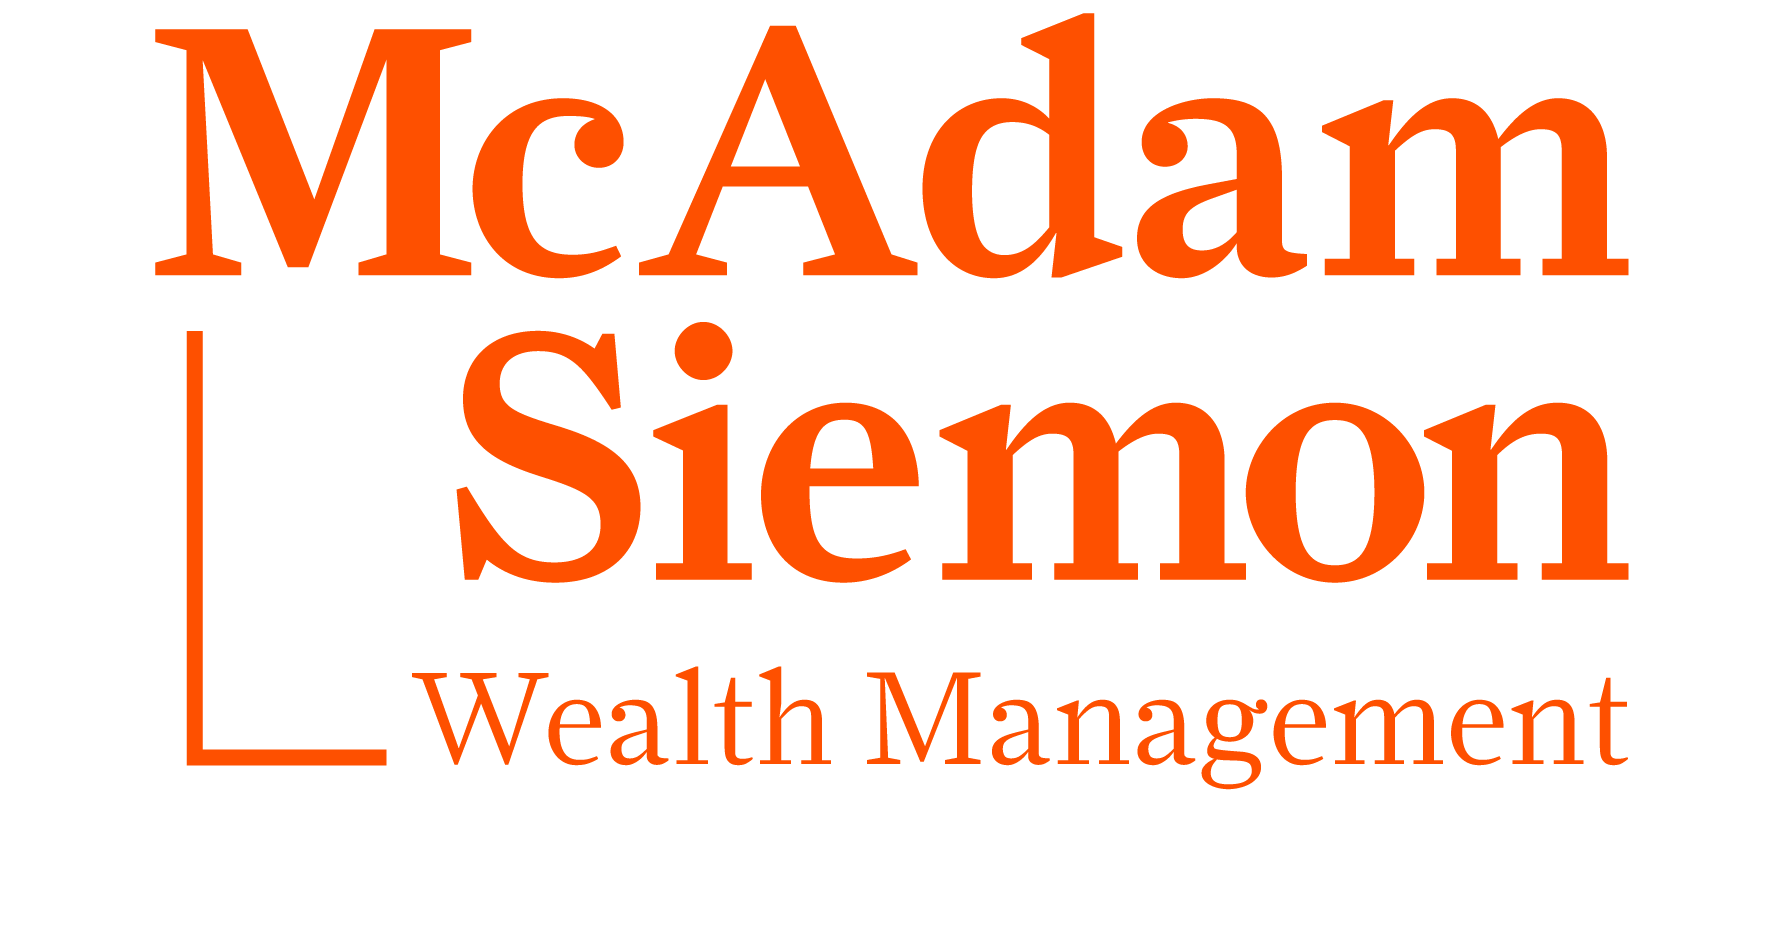 mcadam siemon wealth management logo